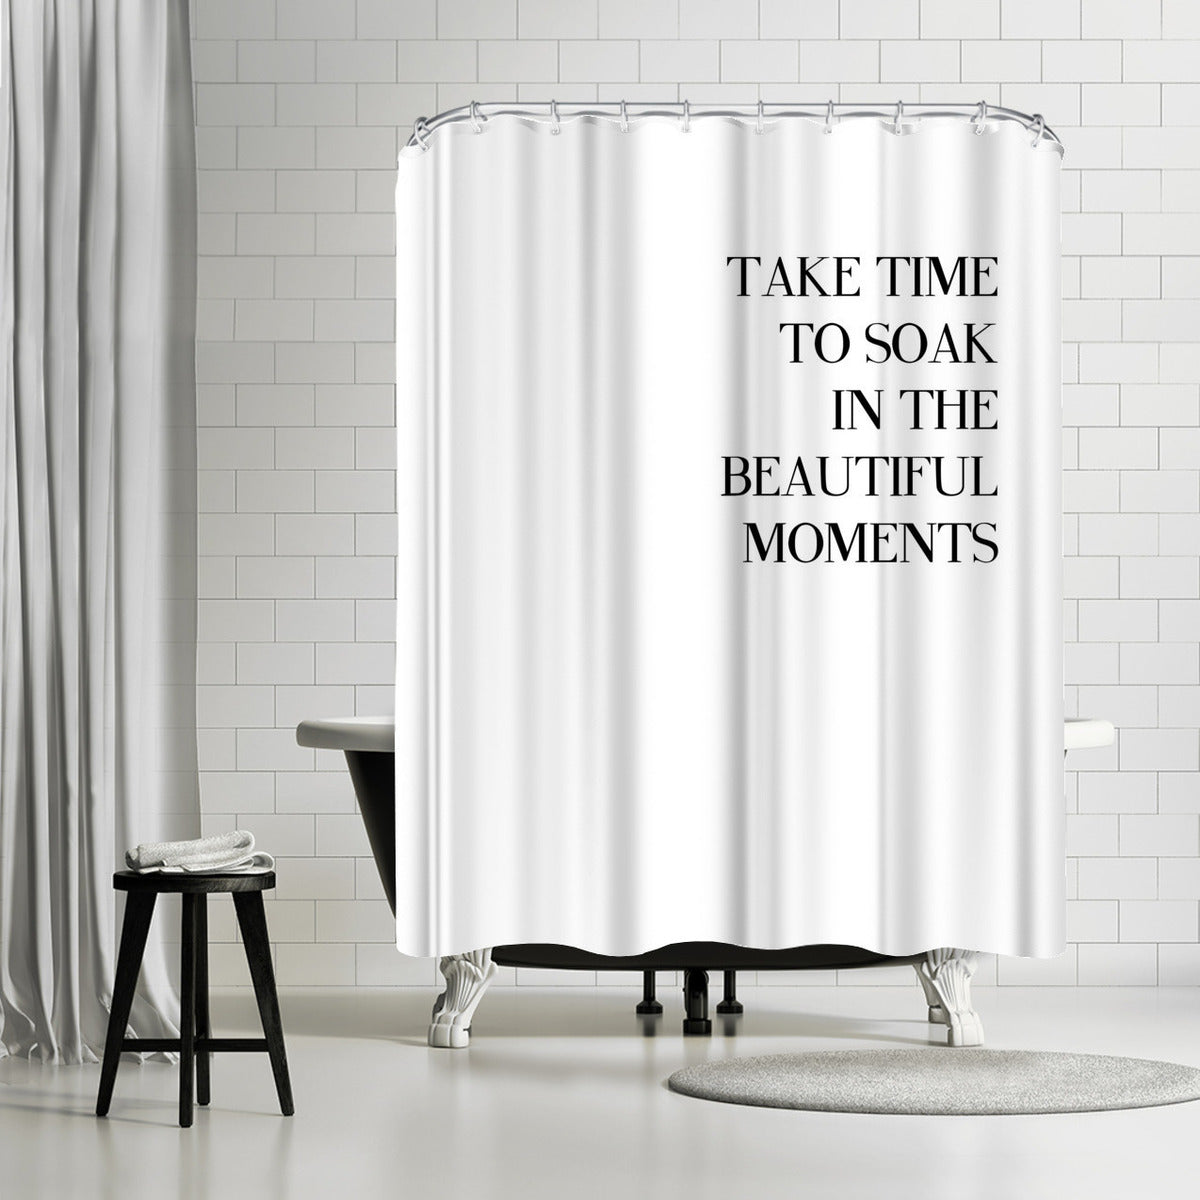 Little Beauty by Explicit Design Shower Curtain - Shower Curtain - Americanflat